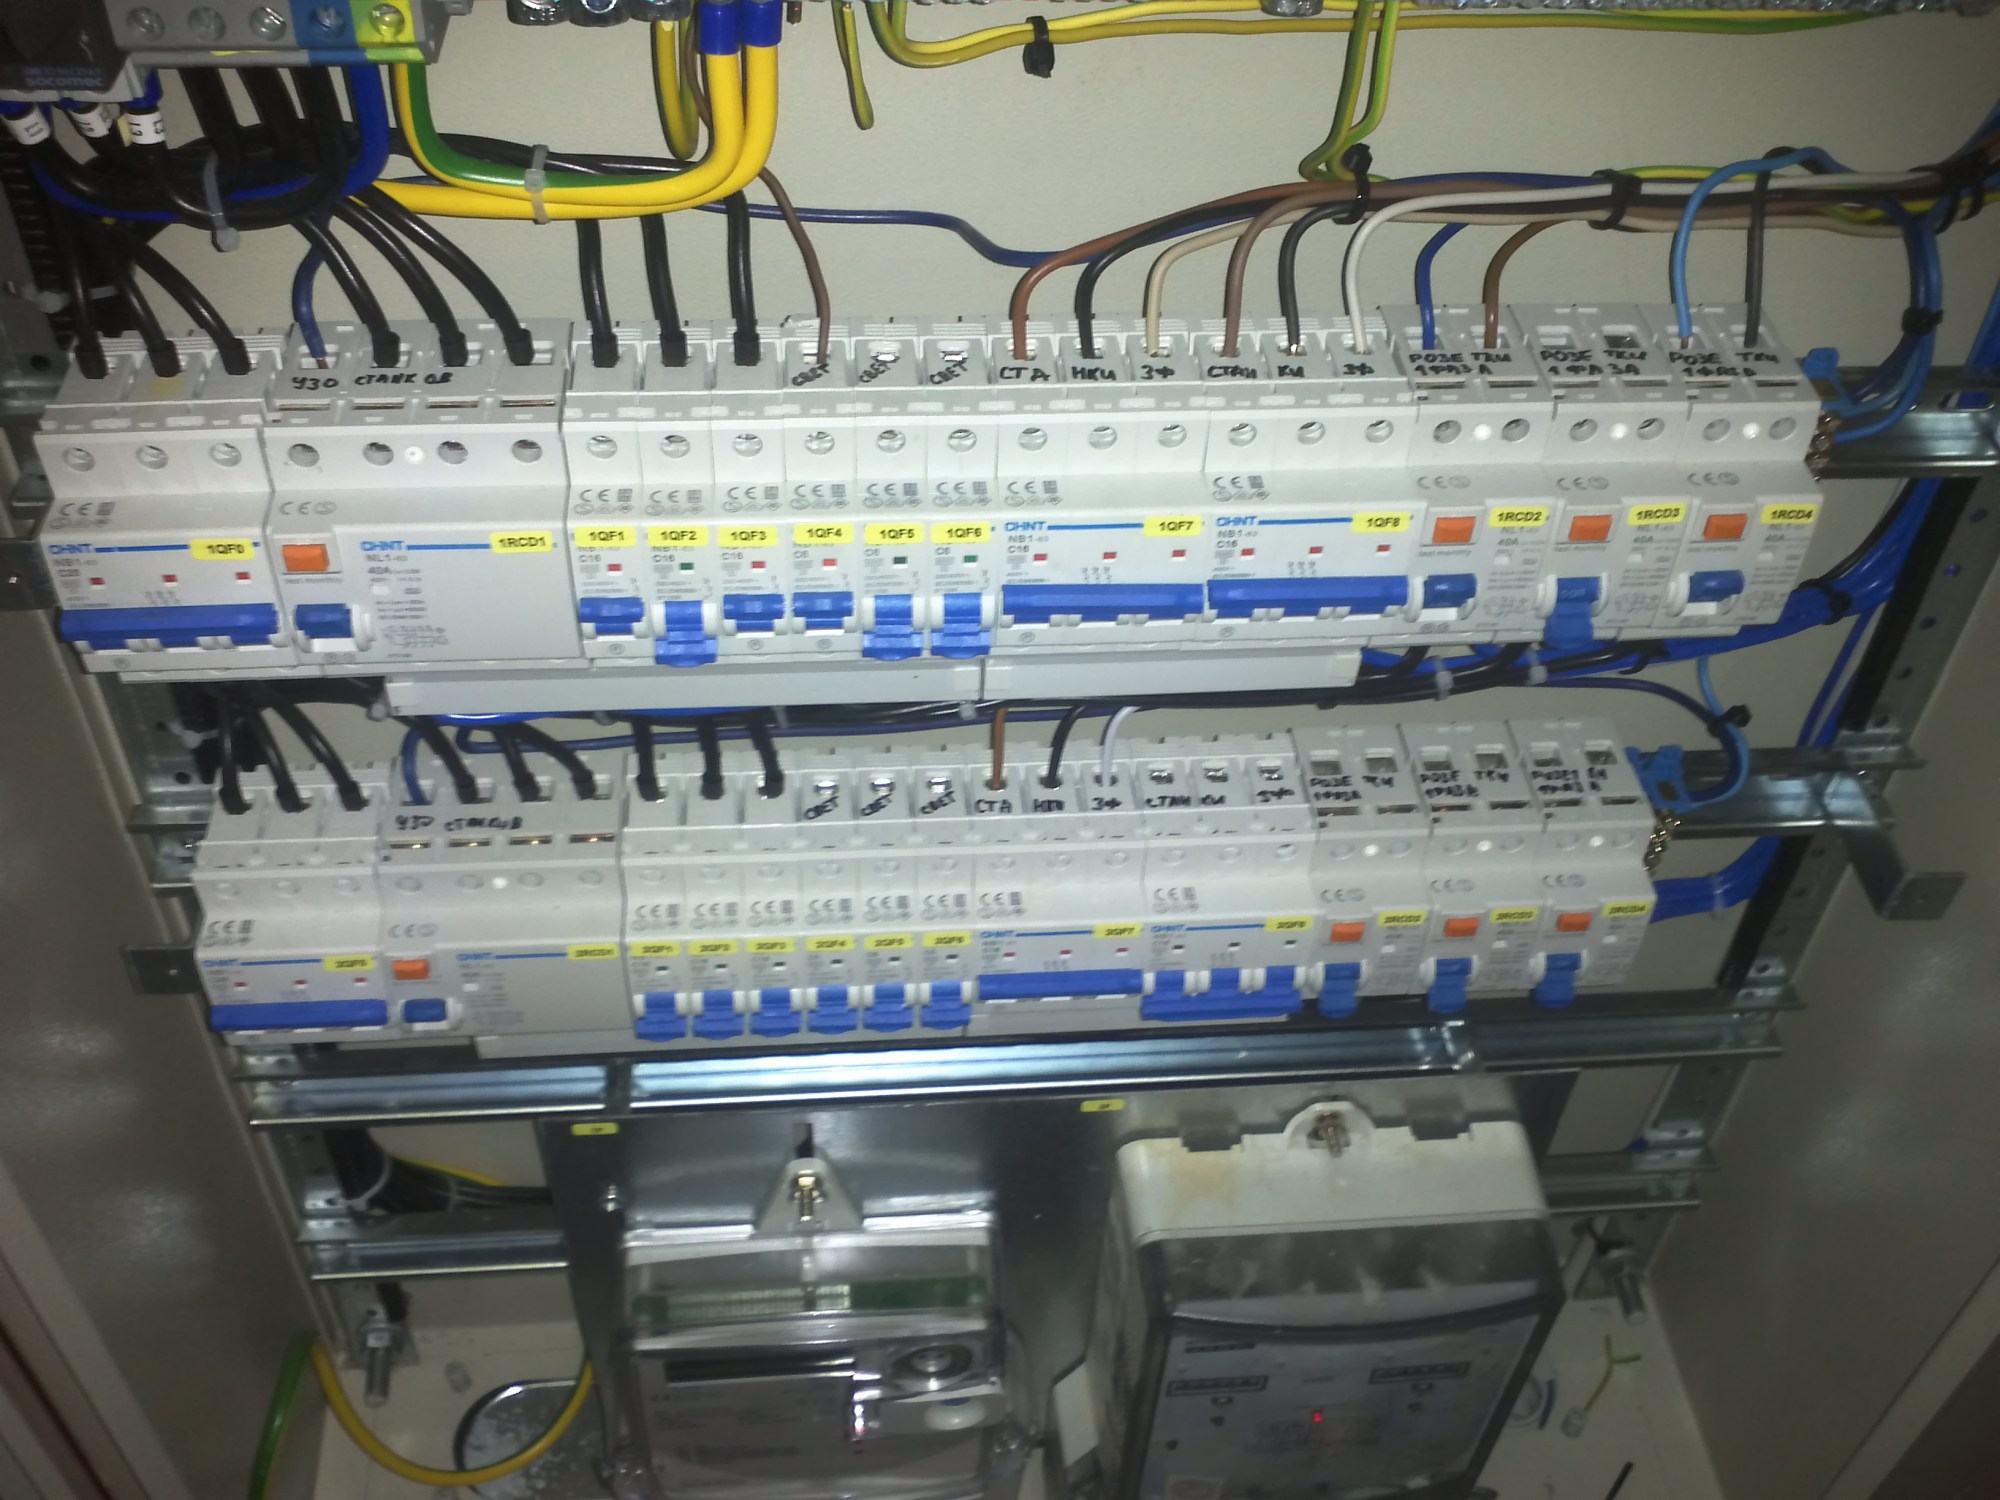 hight resolution of file wiring of distribution board for 2 meters jpg